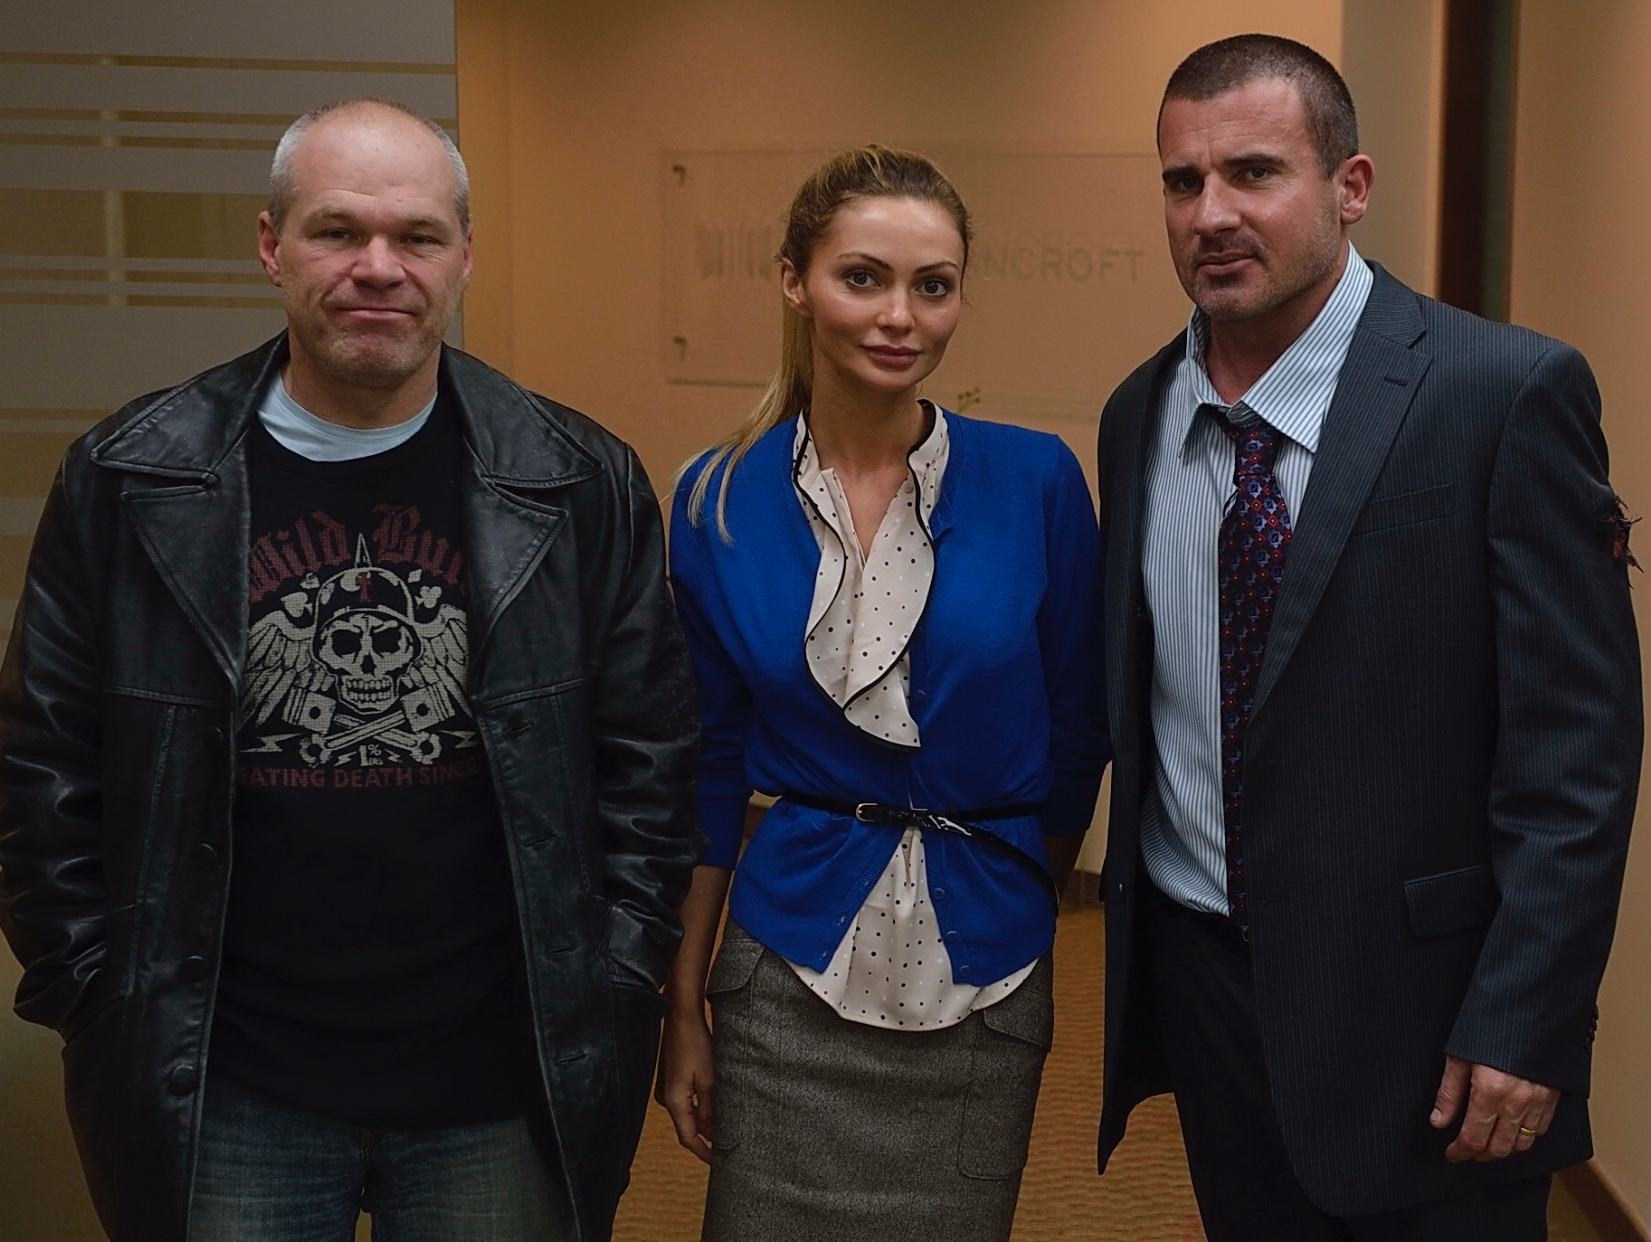 Uwe Boll, Dominic Purcell, and Gia Skova in Bailout: The Age of Greed (2013)